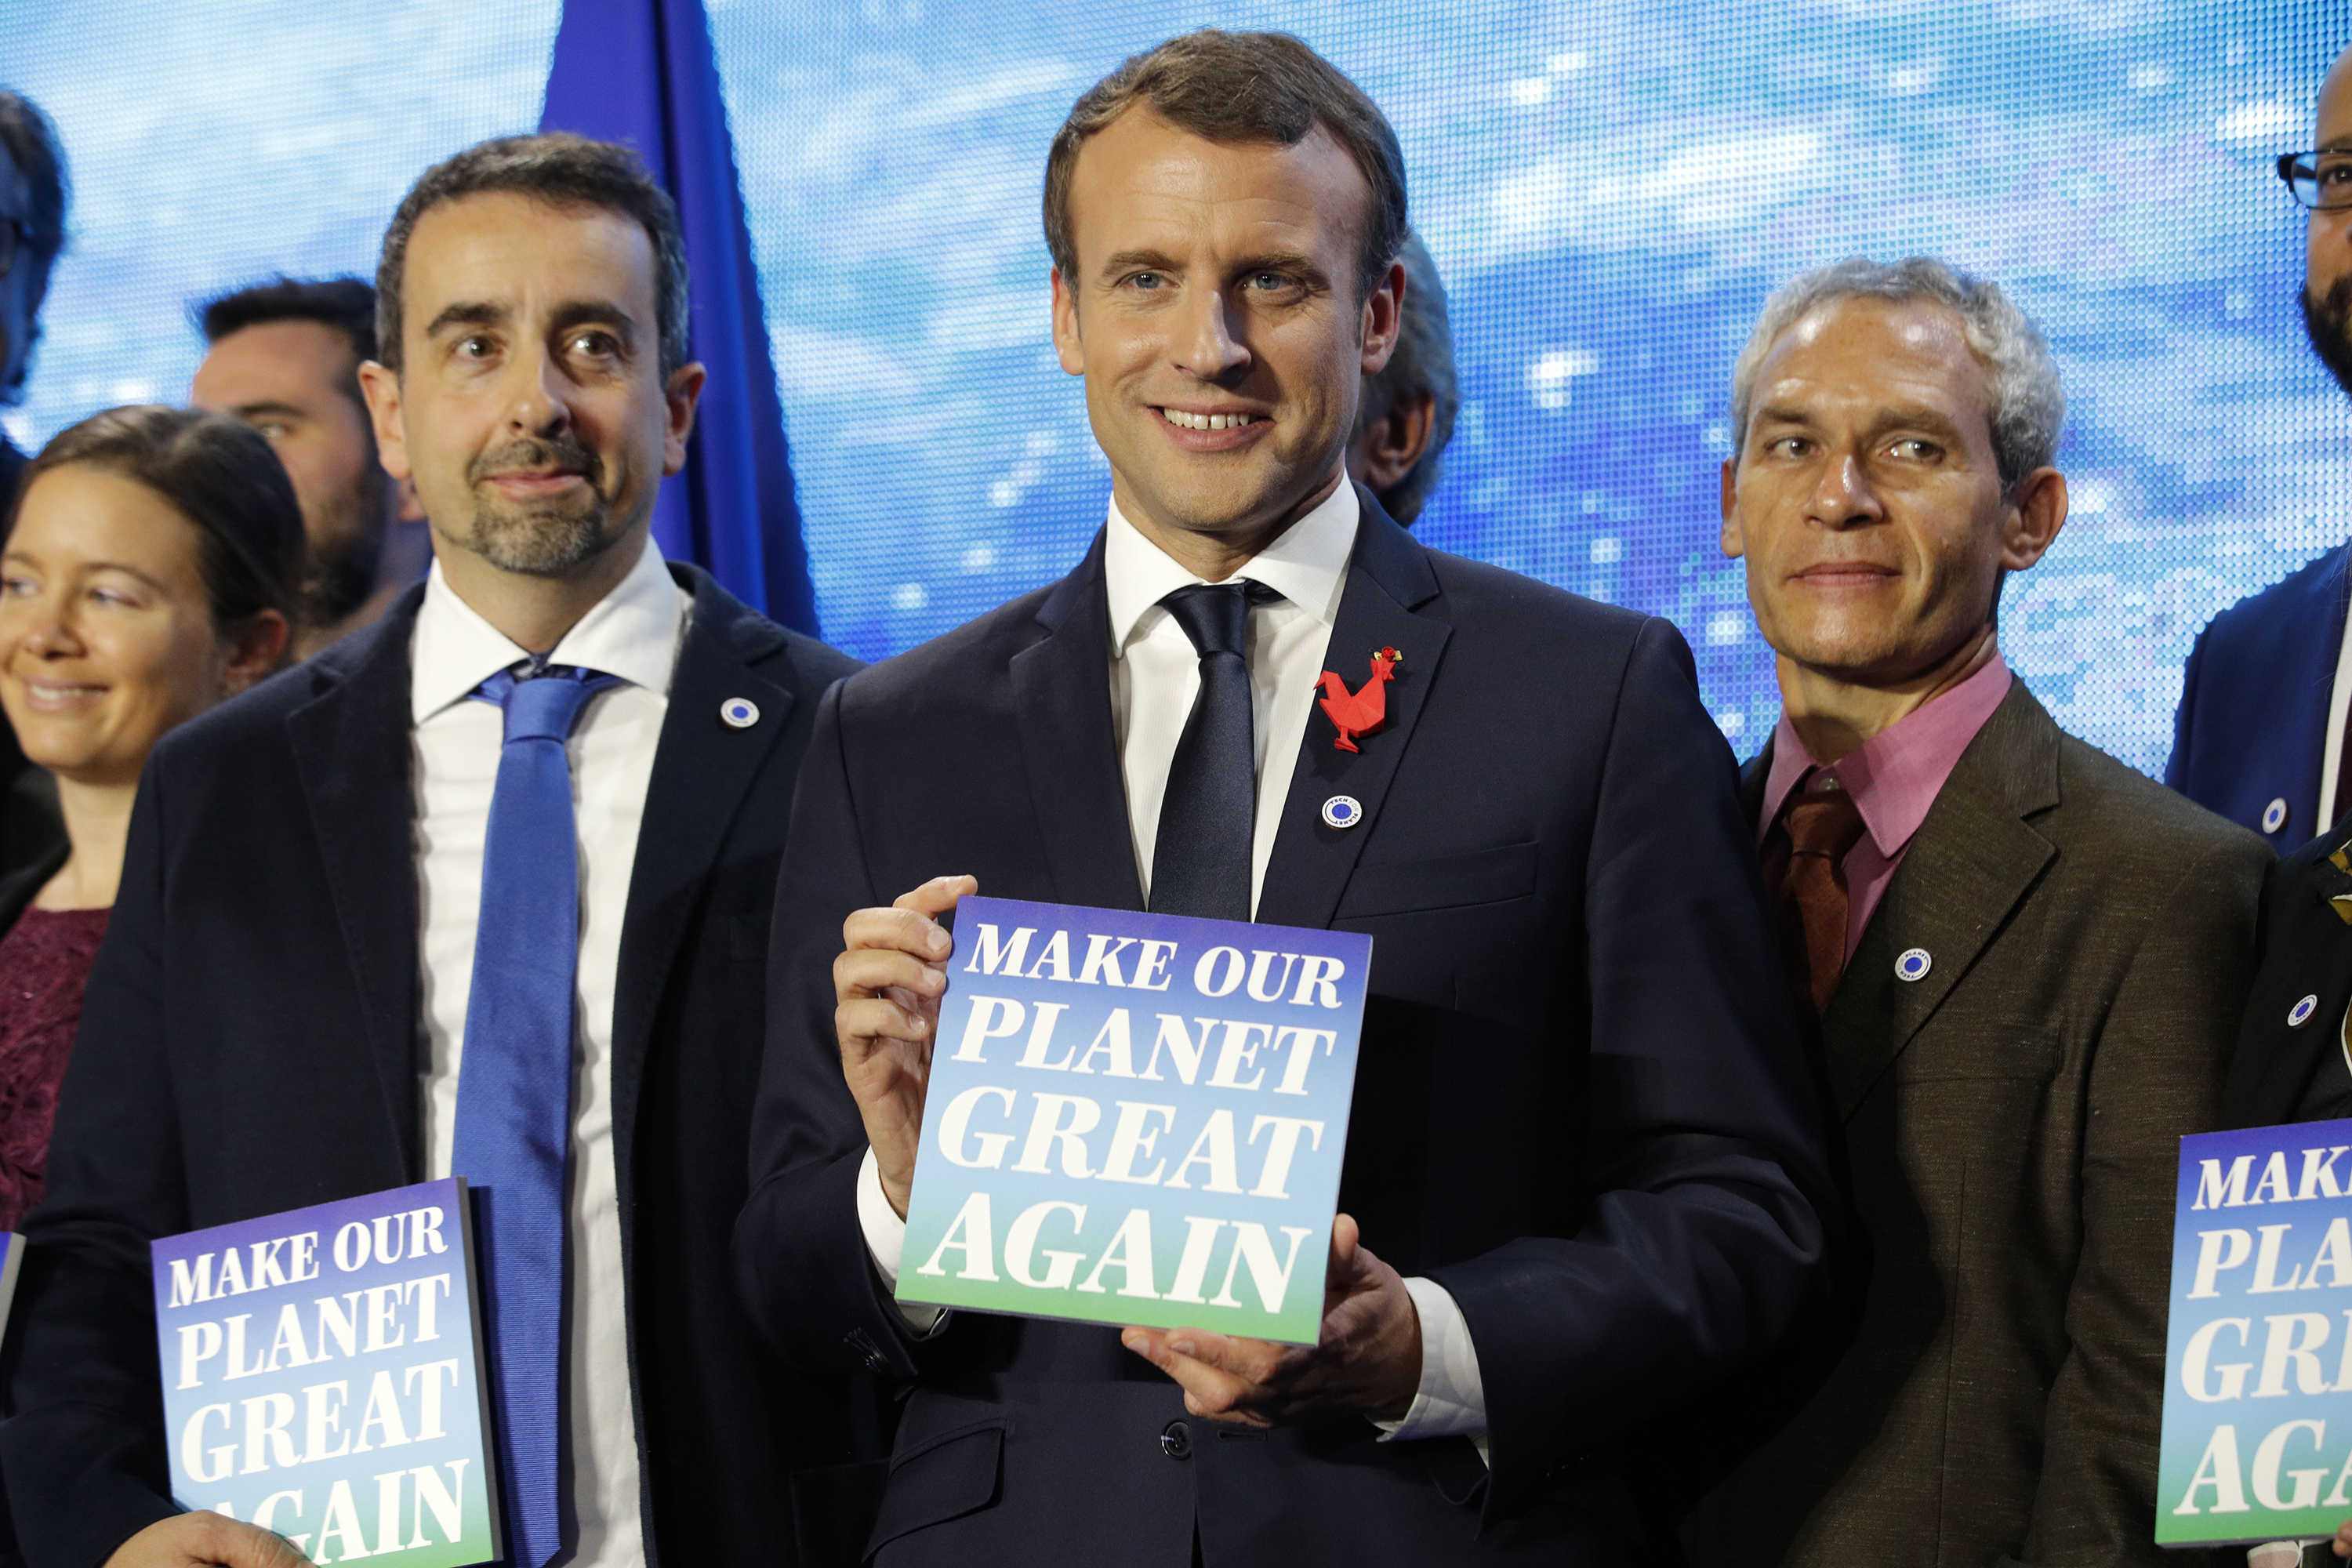 Photo: French President Emmanuel Macron, Make The Planet Great Again